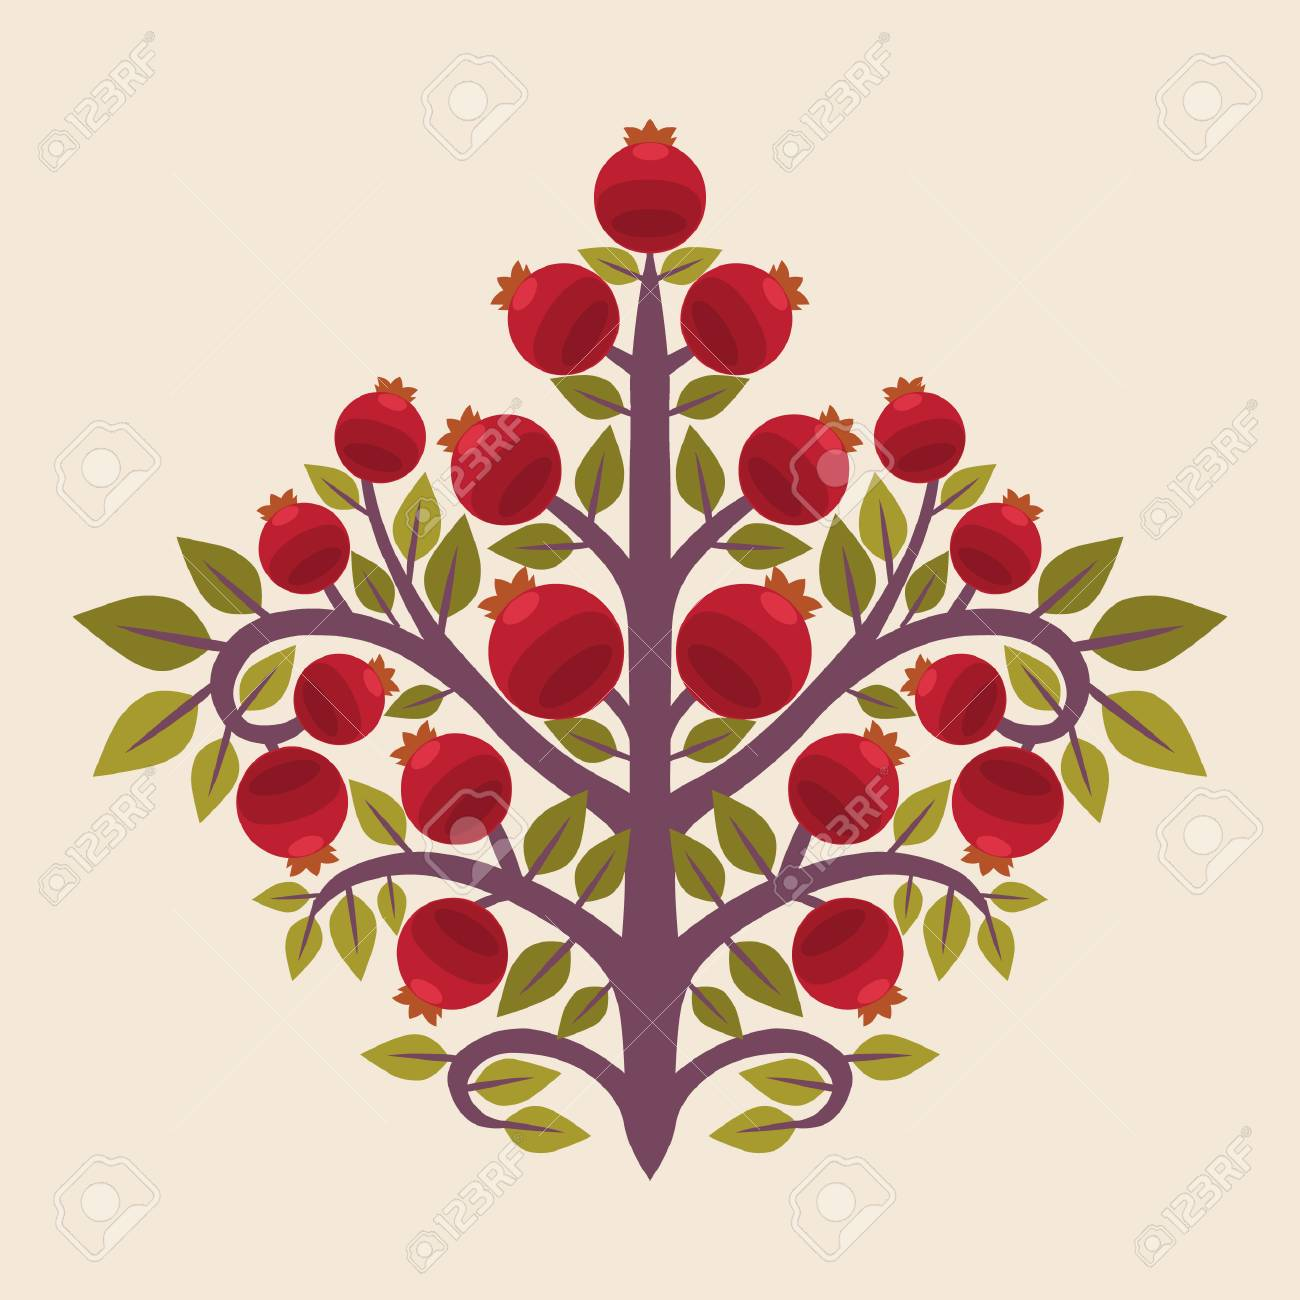 Pomegranate Tree Vector Illustration In Ethnic Style Royalty Free Cliparts Vectors And Stock Illustration Image 110206794